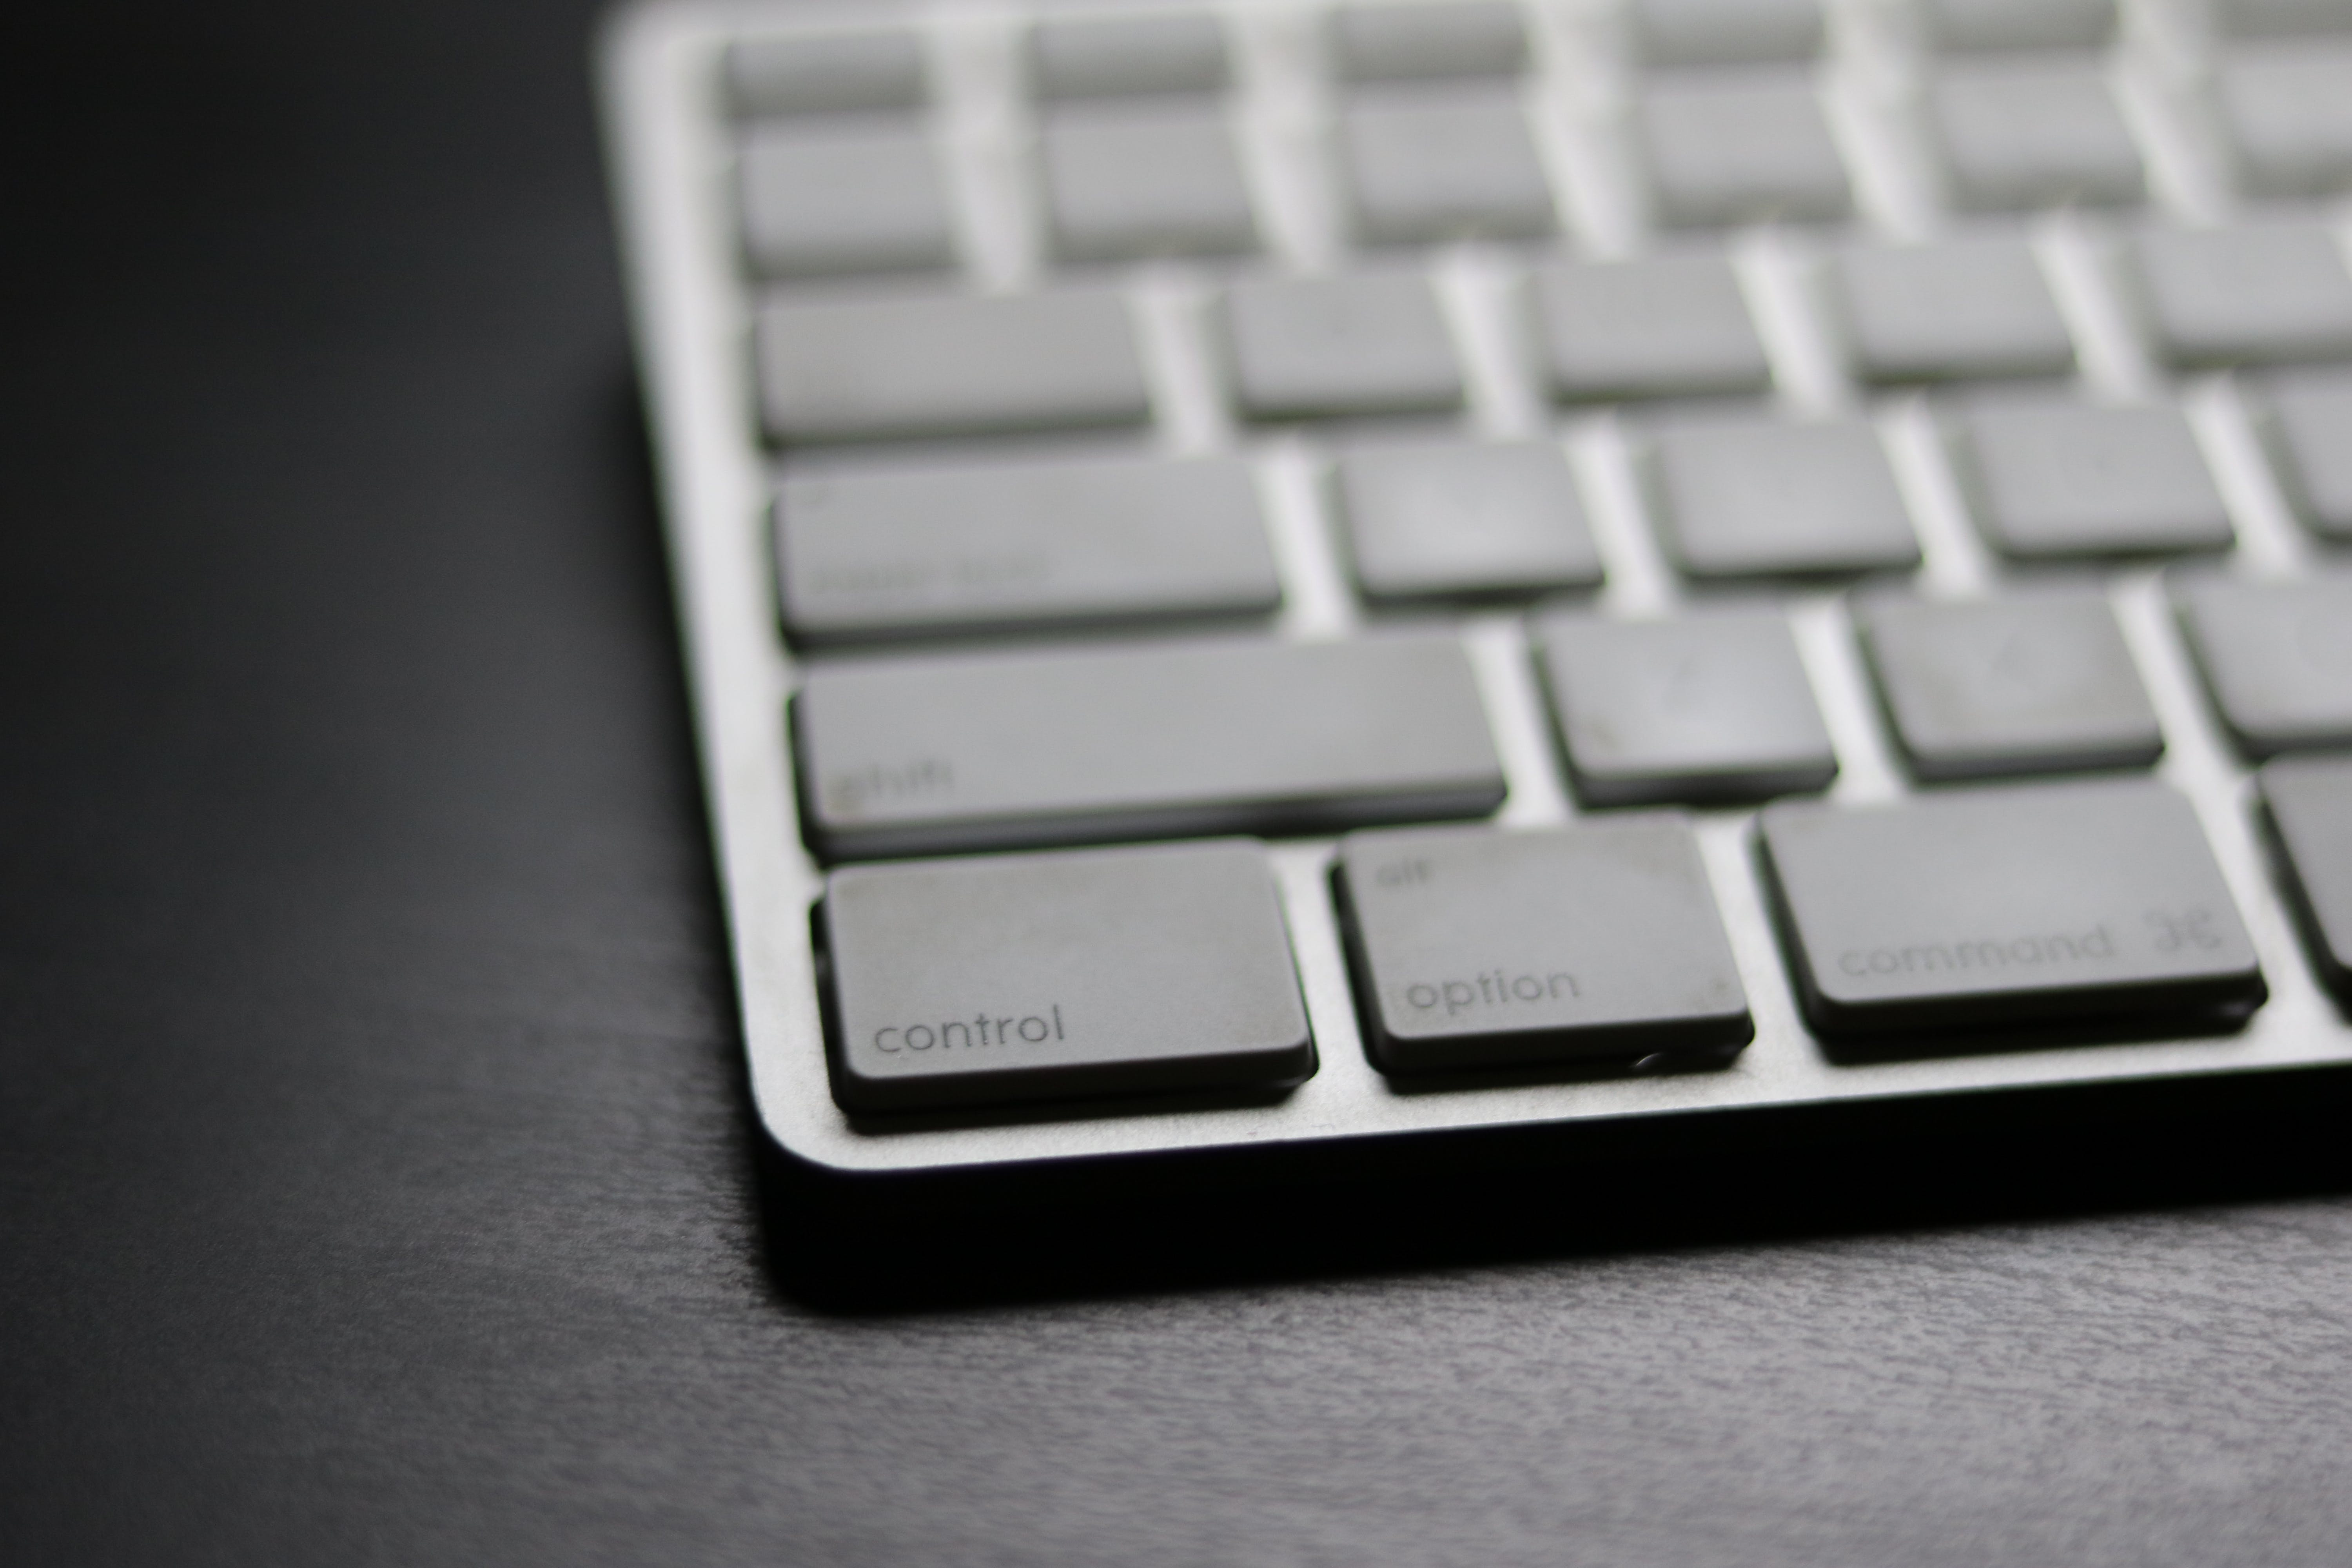 Focus Photography of Keyboard